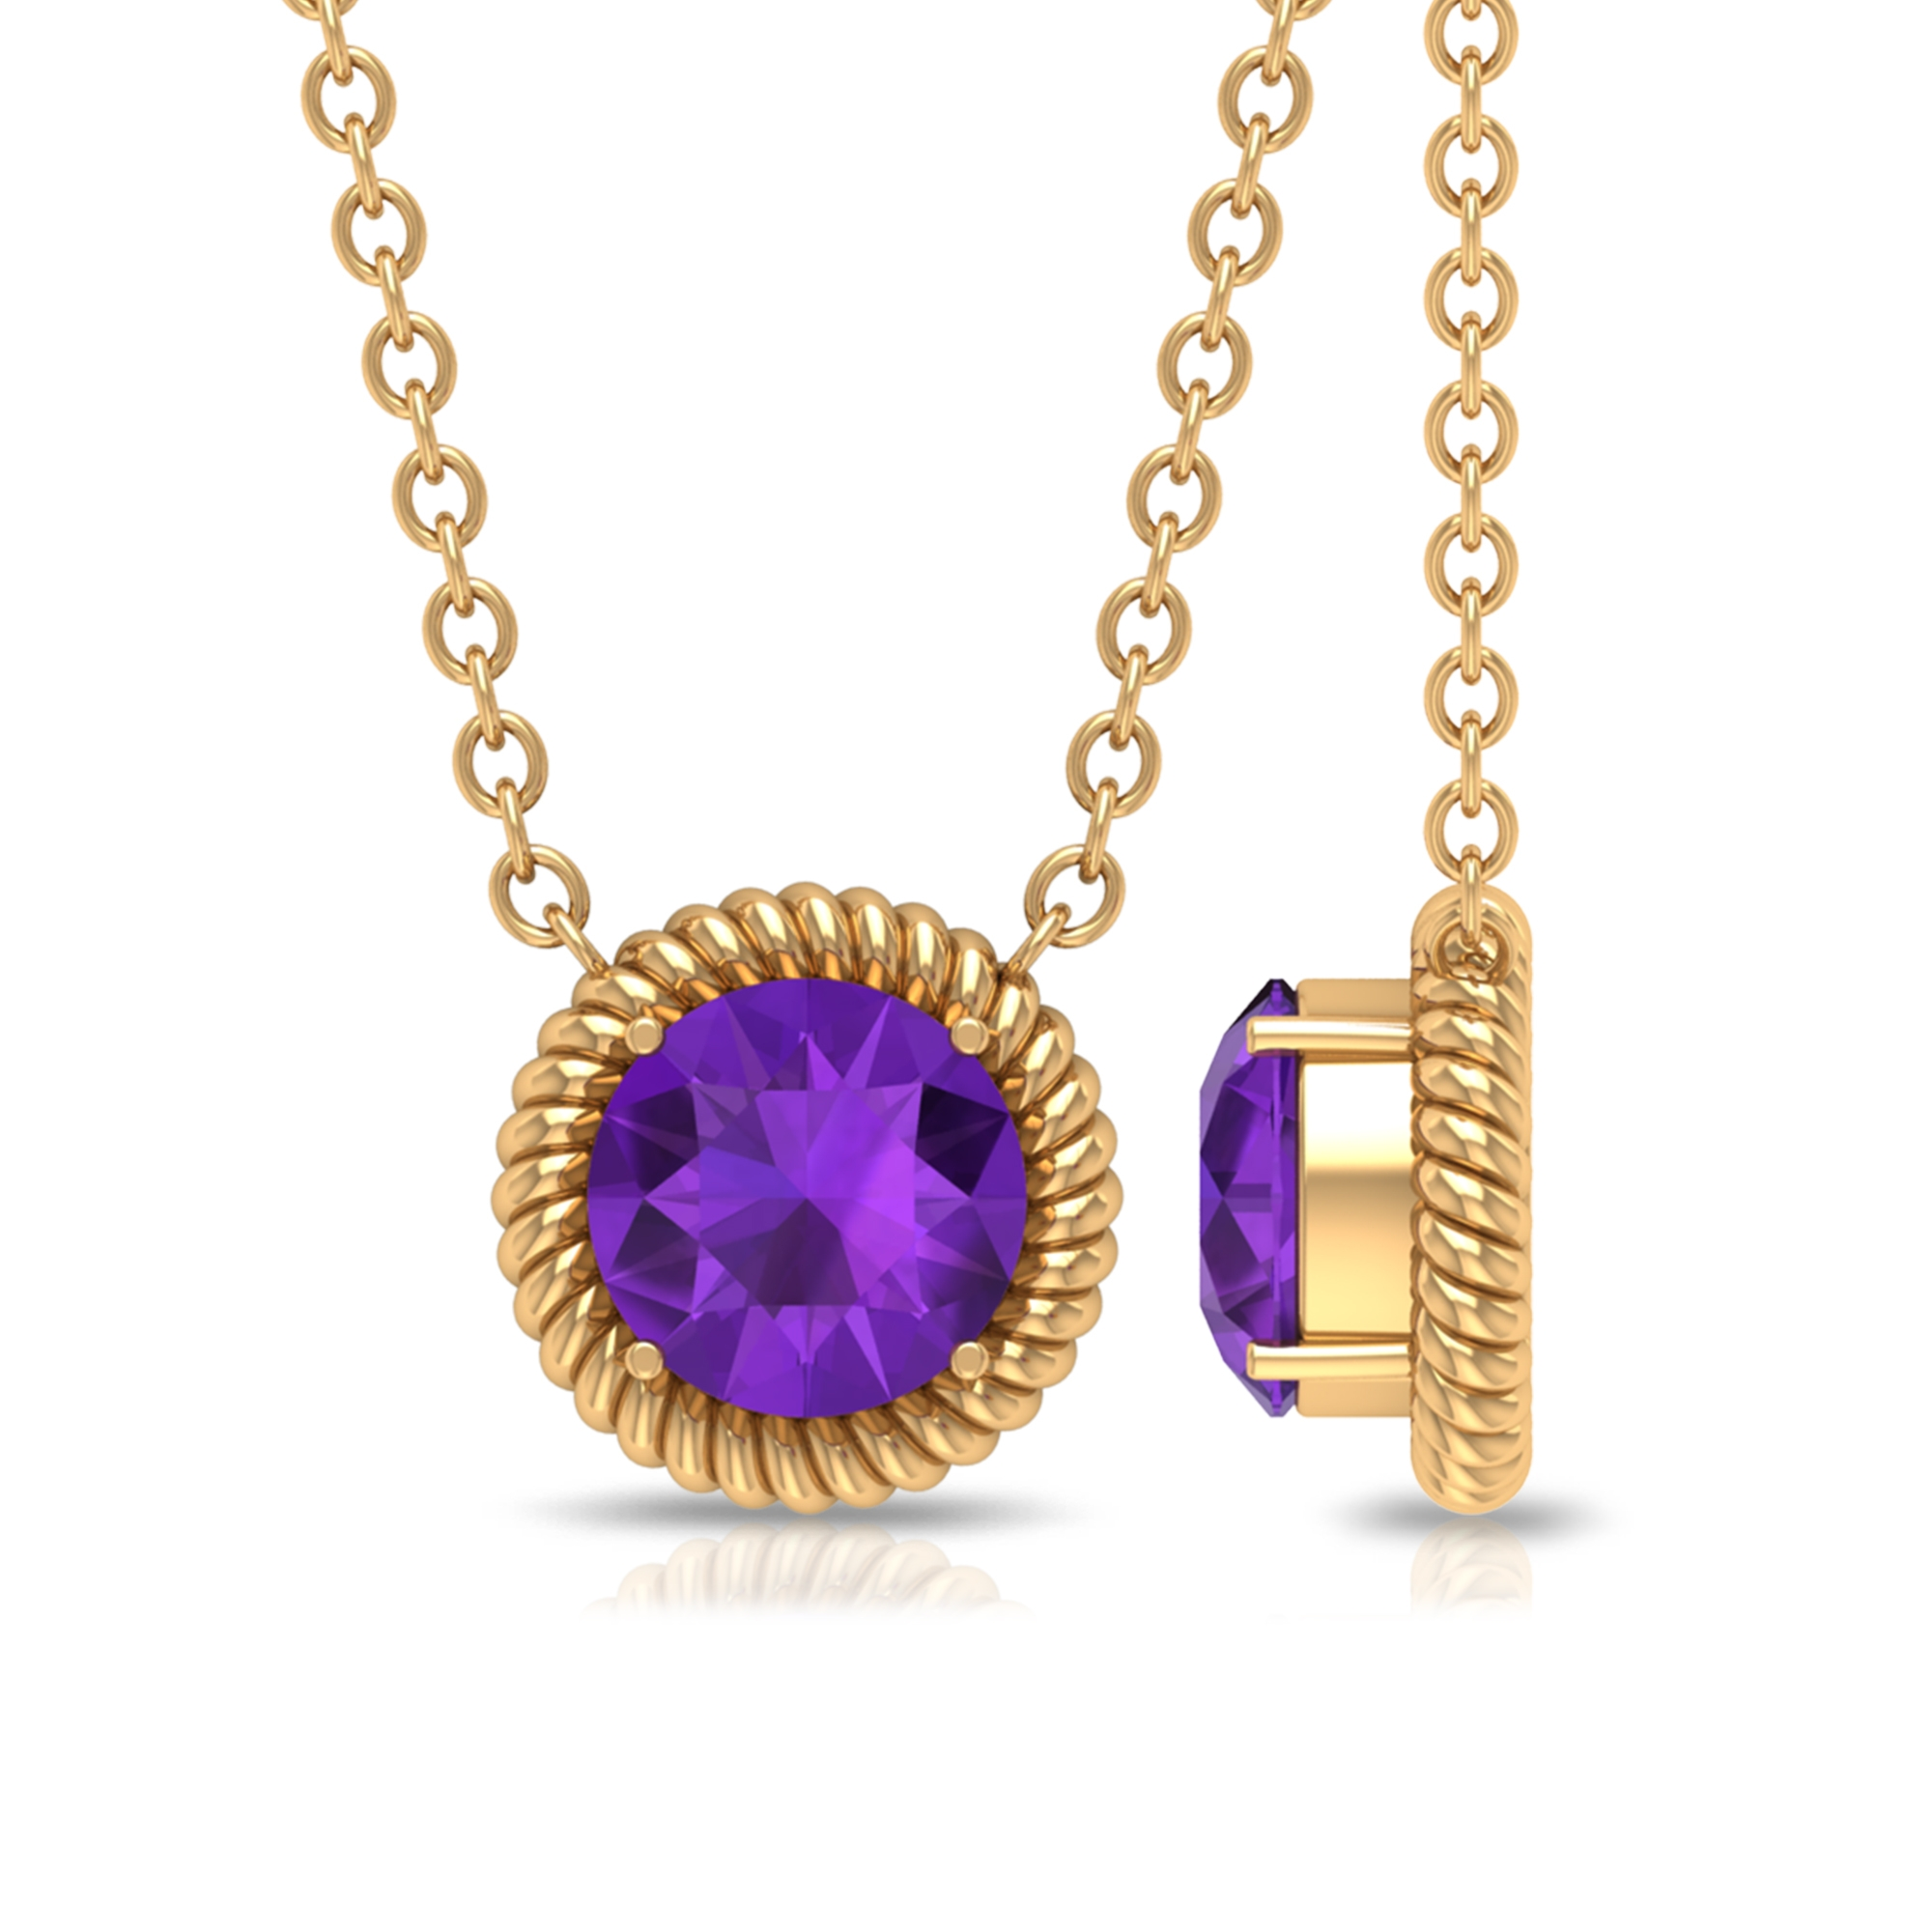 5X5 MM Round Shape Amethyst Gold Solitaire Pendant Necklace